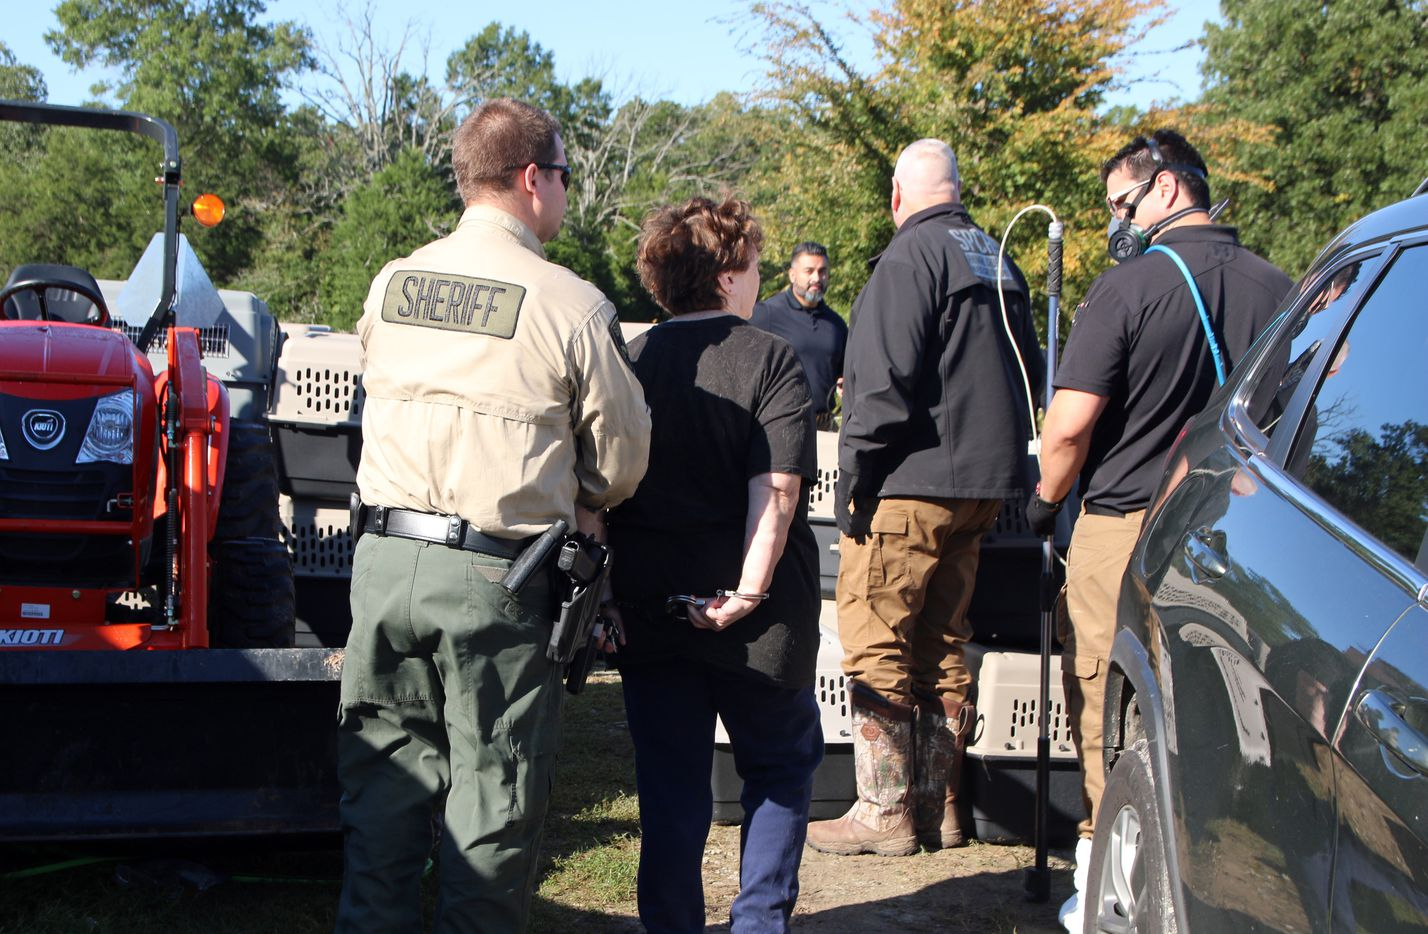 The owners of the animals were arrested and charged with child endangerment and animal cruelty, the SPCA said.